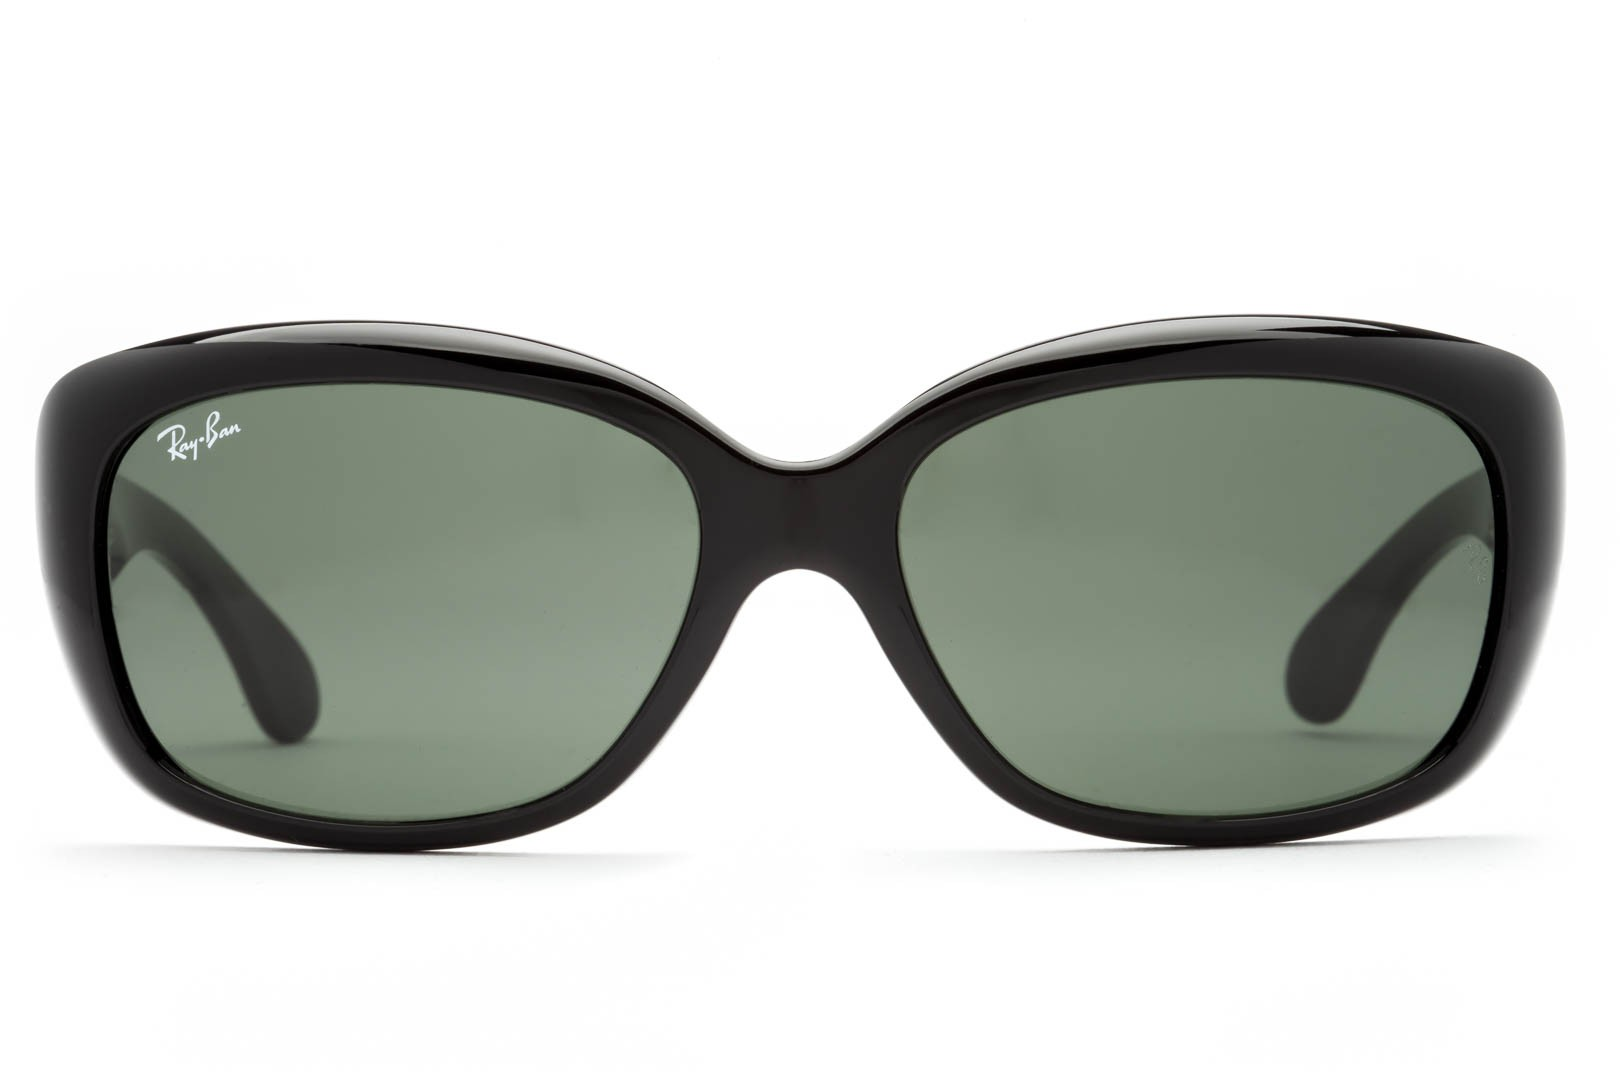 Ray Ban Jackie Ohh RB20 20 20